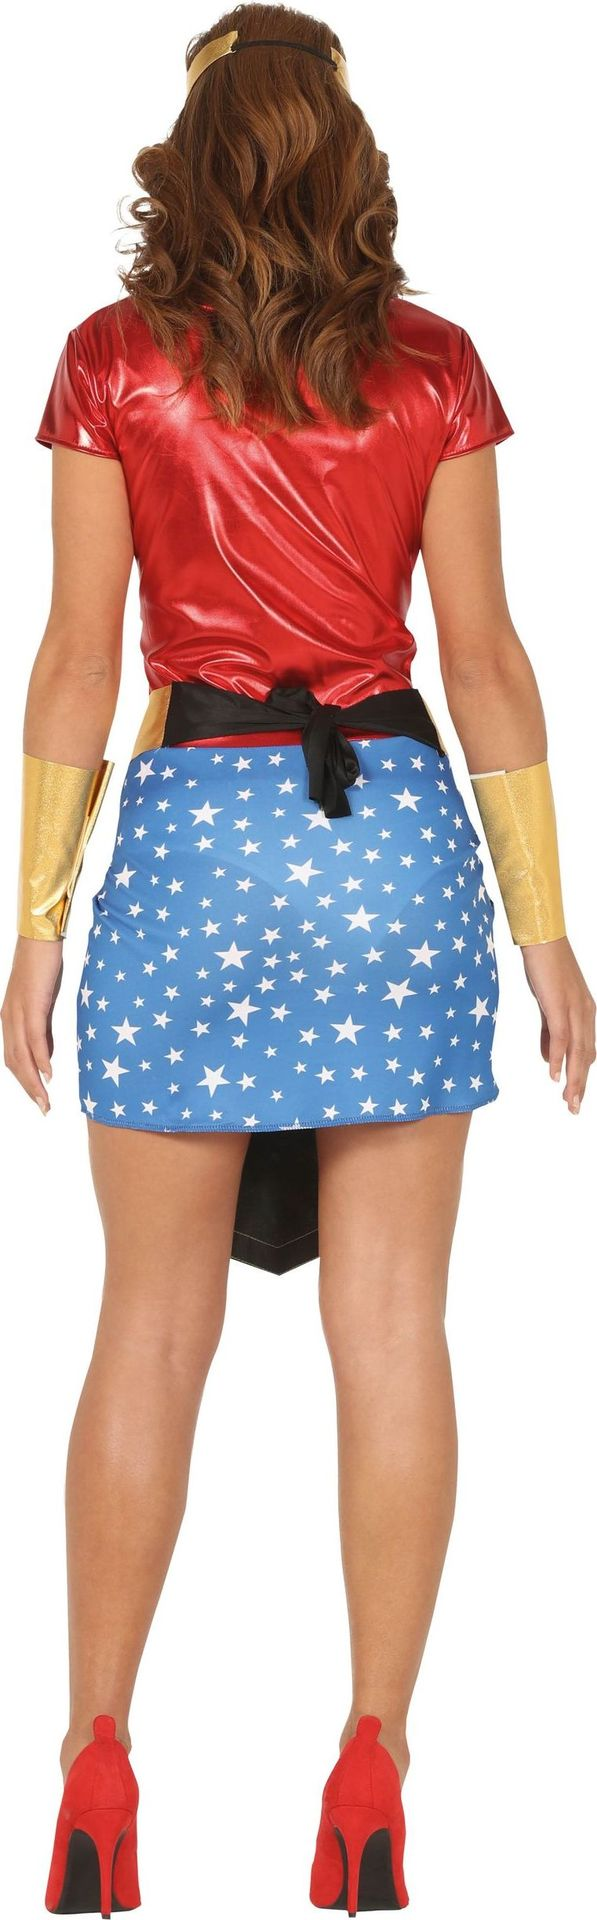 Superwoman jurk dames